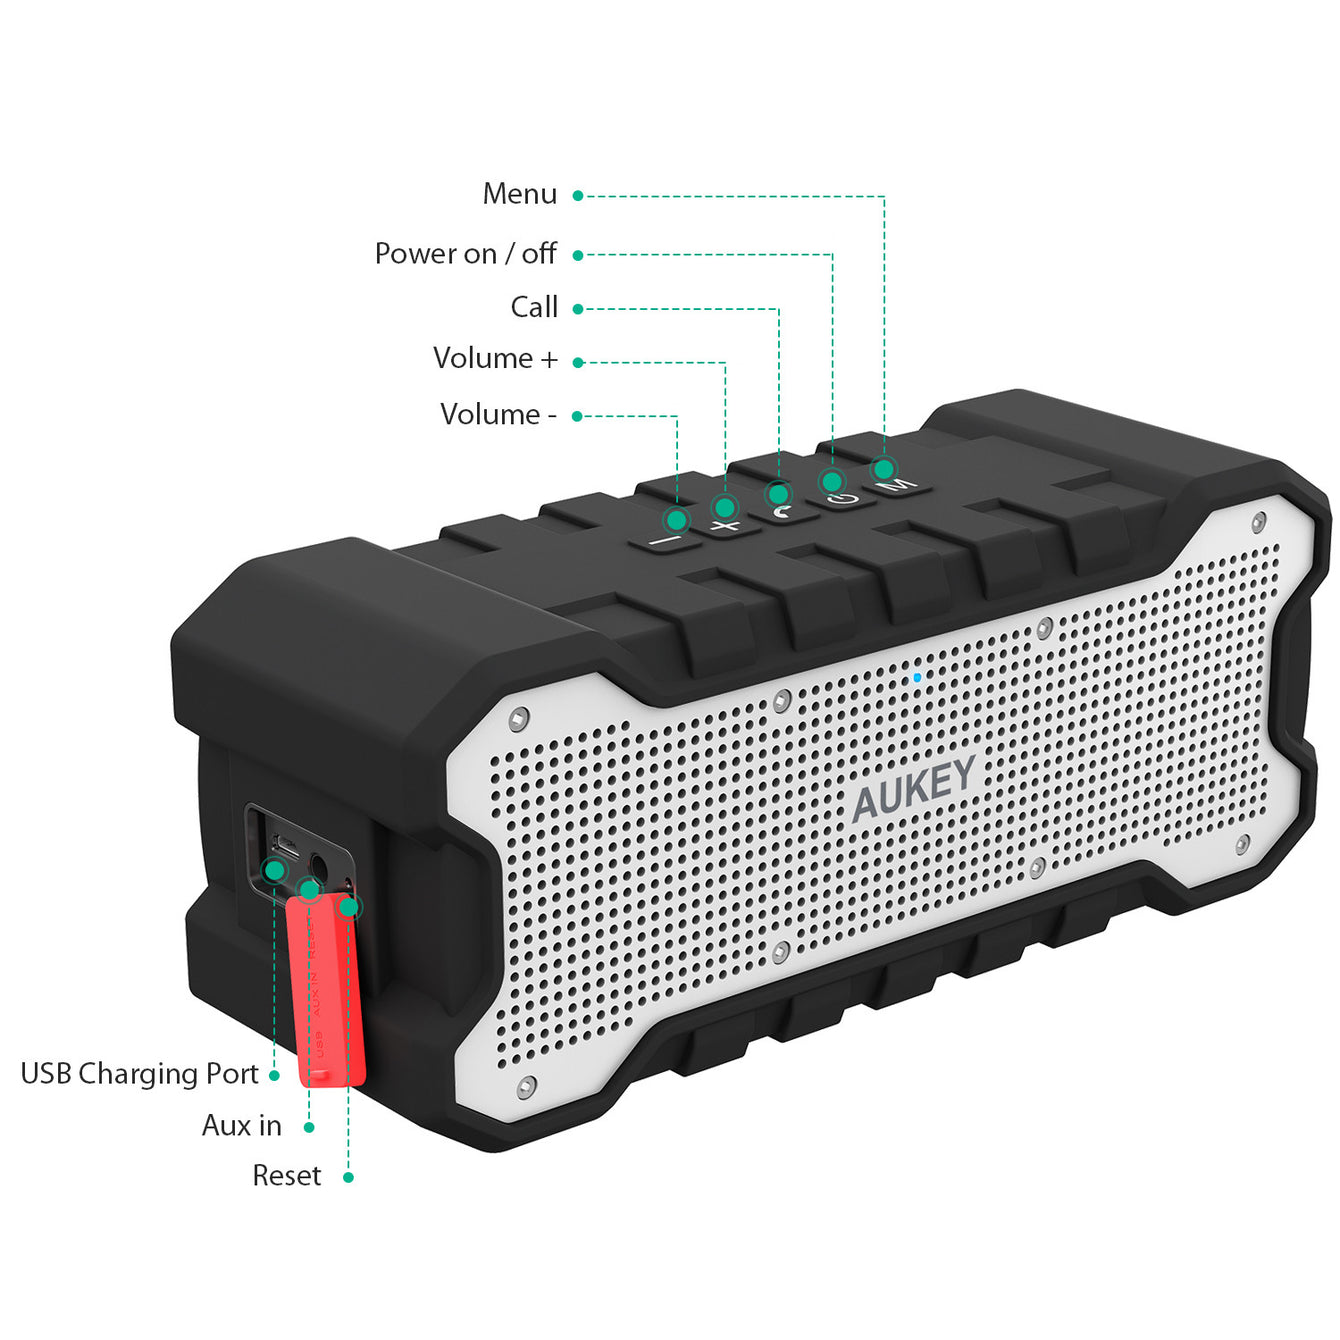 Aukey [SK-M12] SoundTank Waterproof Bluetooth 4.1 Speaker